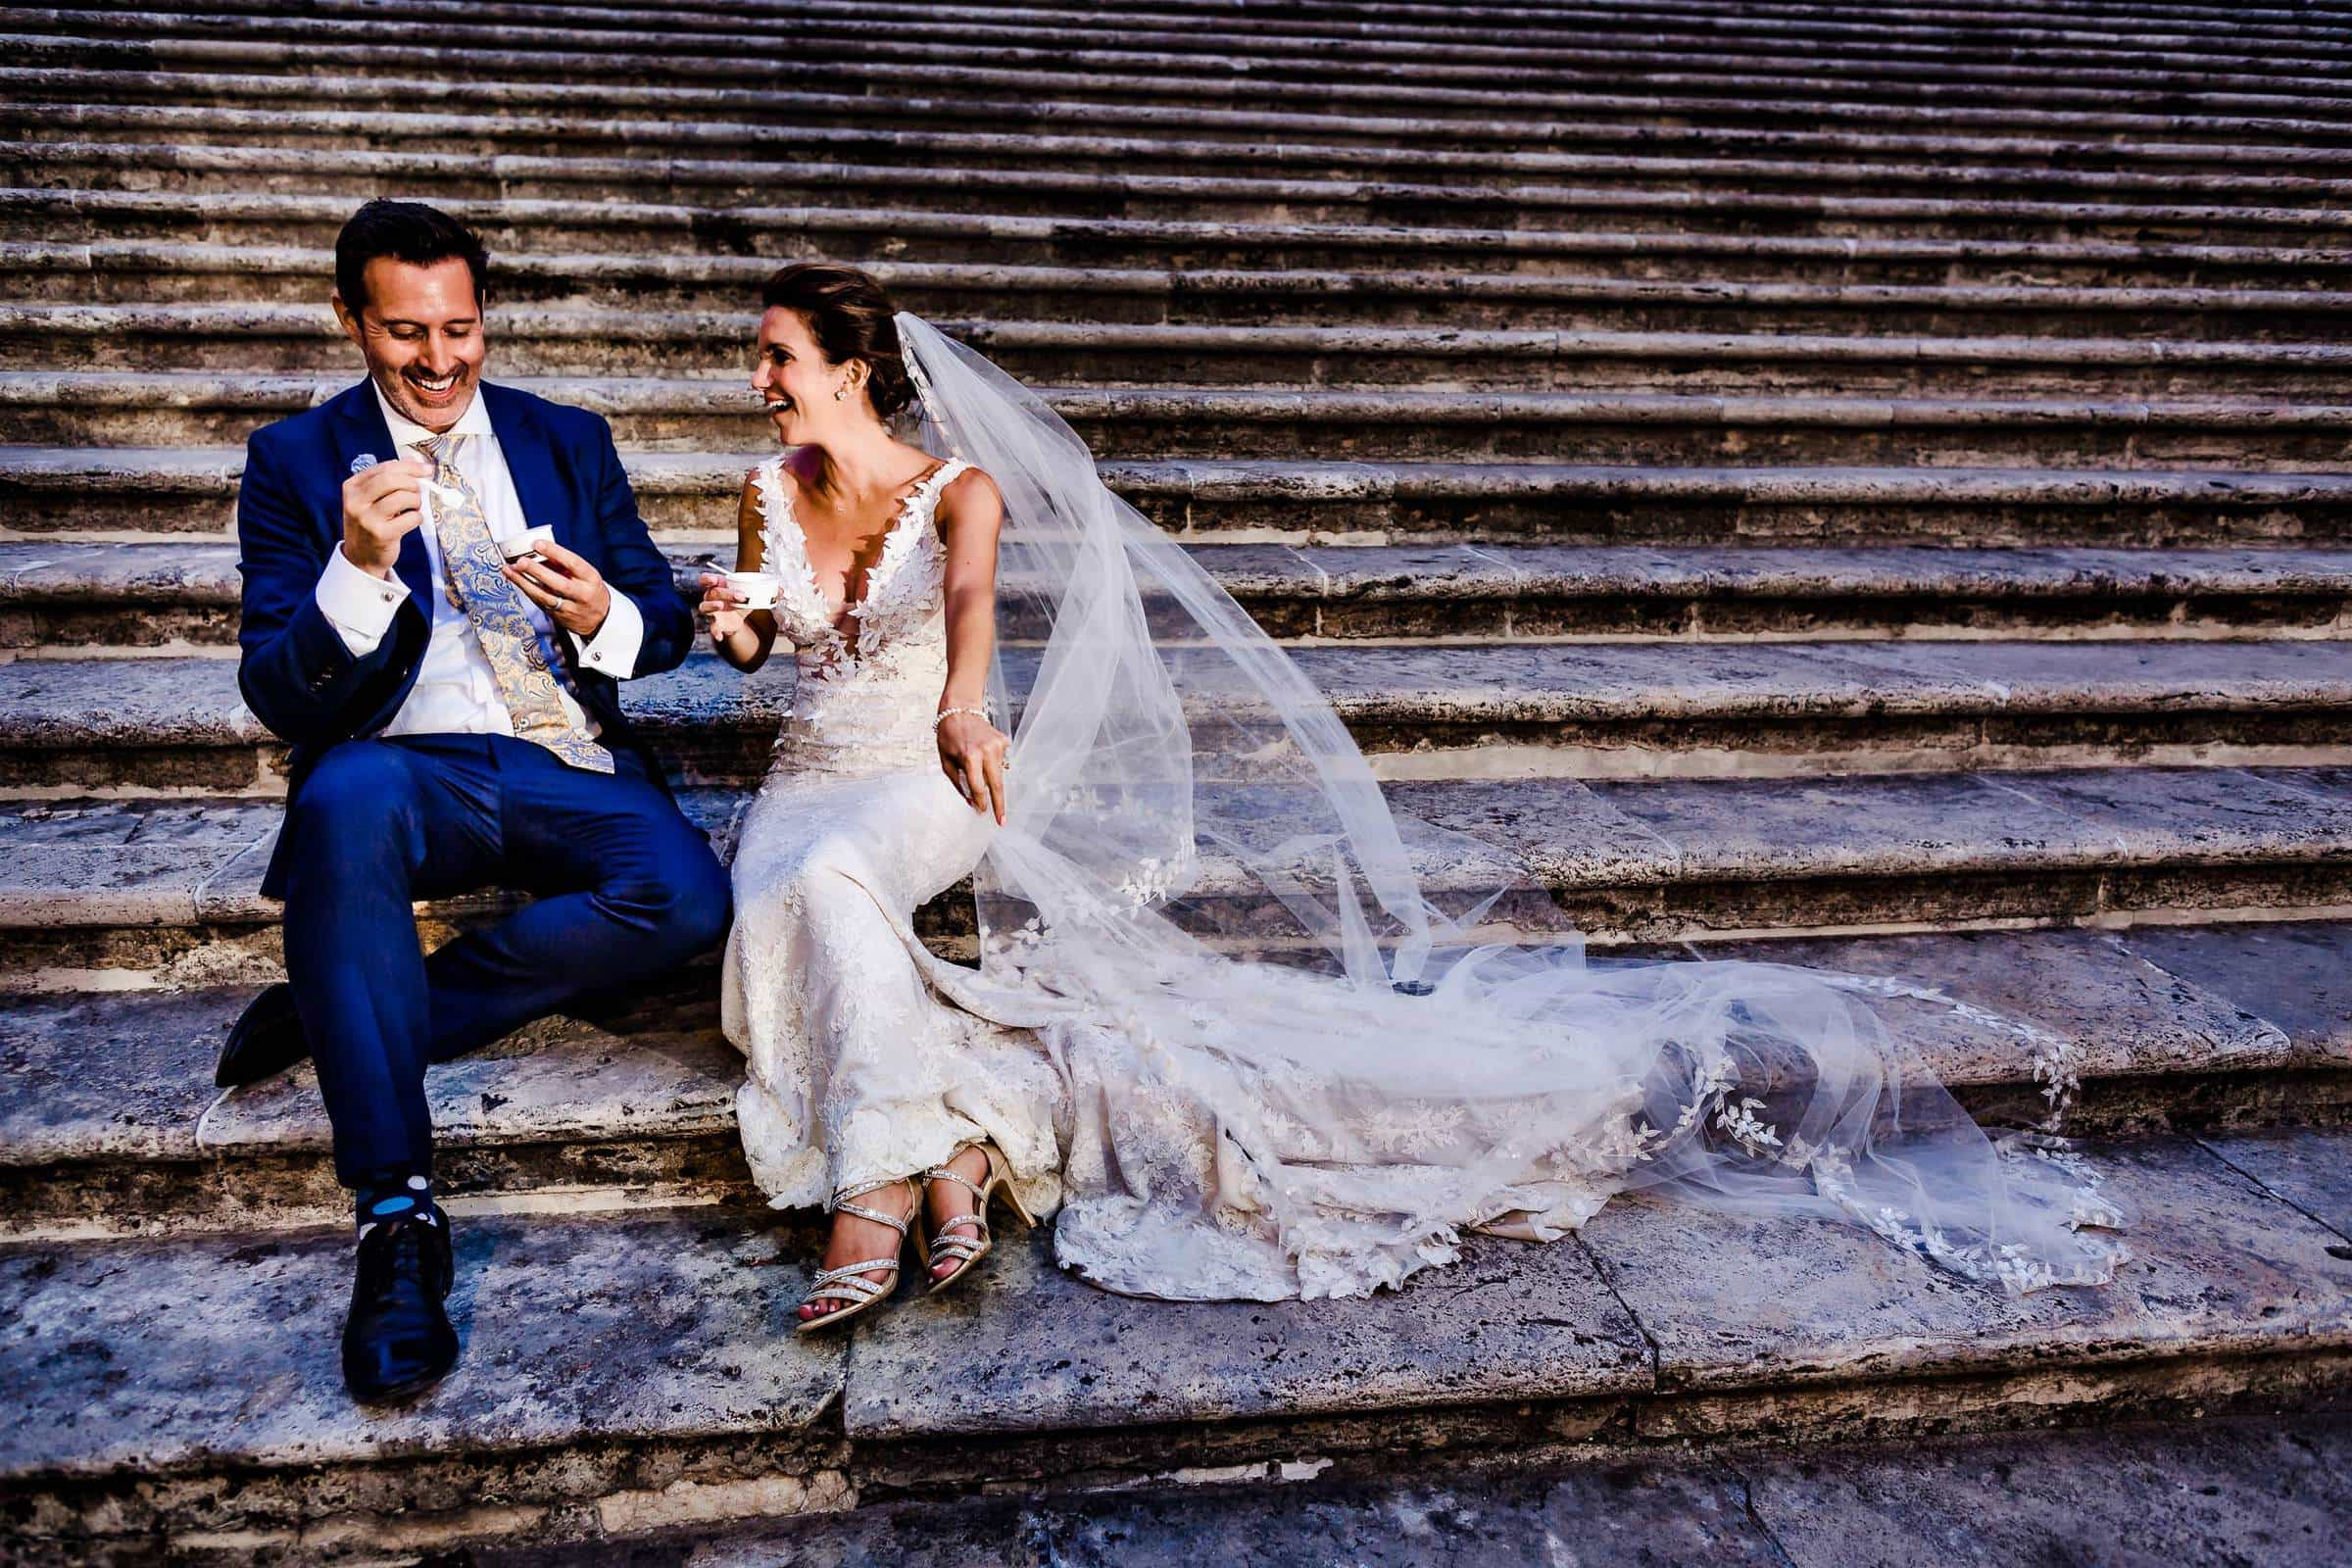 Bride and Groom enjoying gelato on church steps in Todi Italy just after their wedding ceremony.